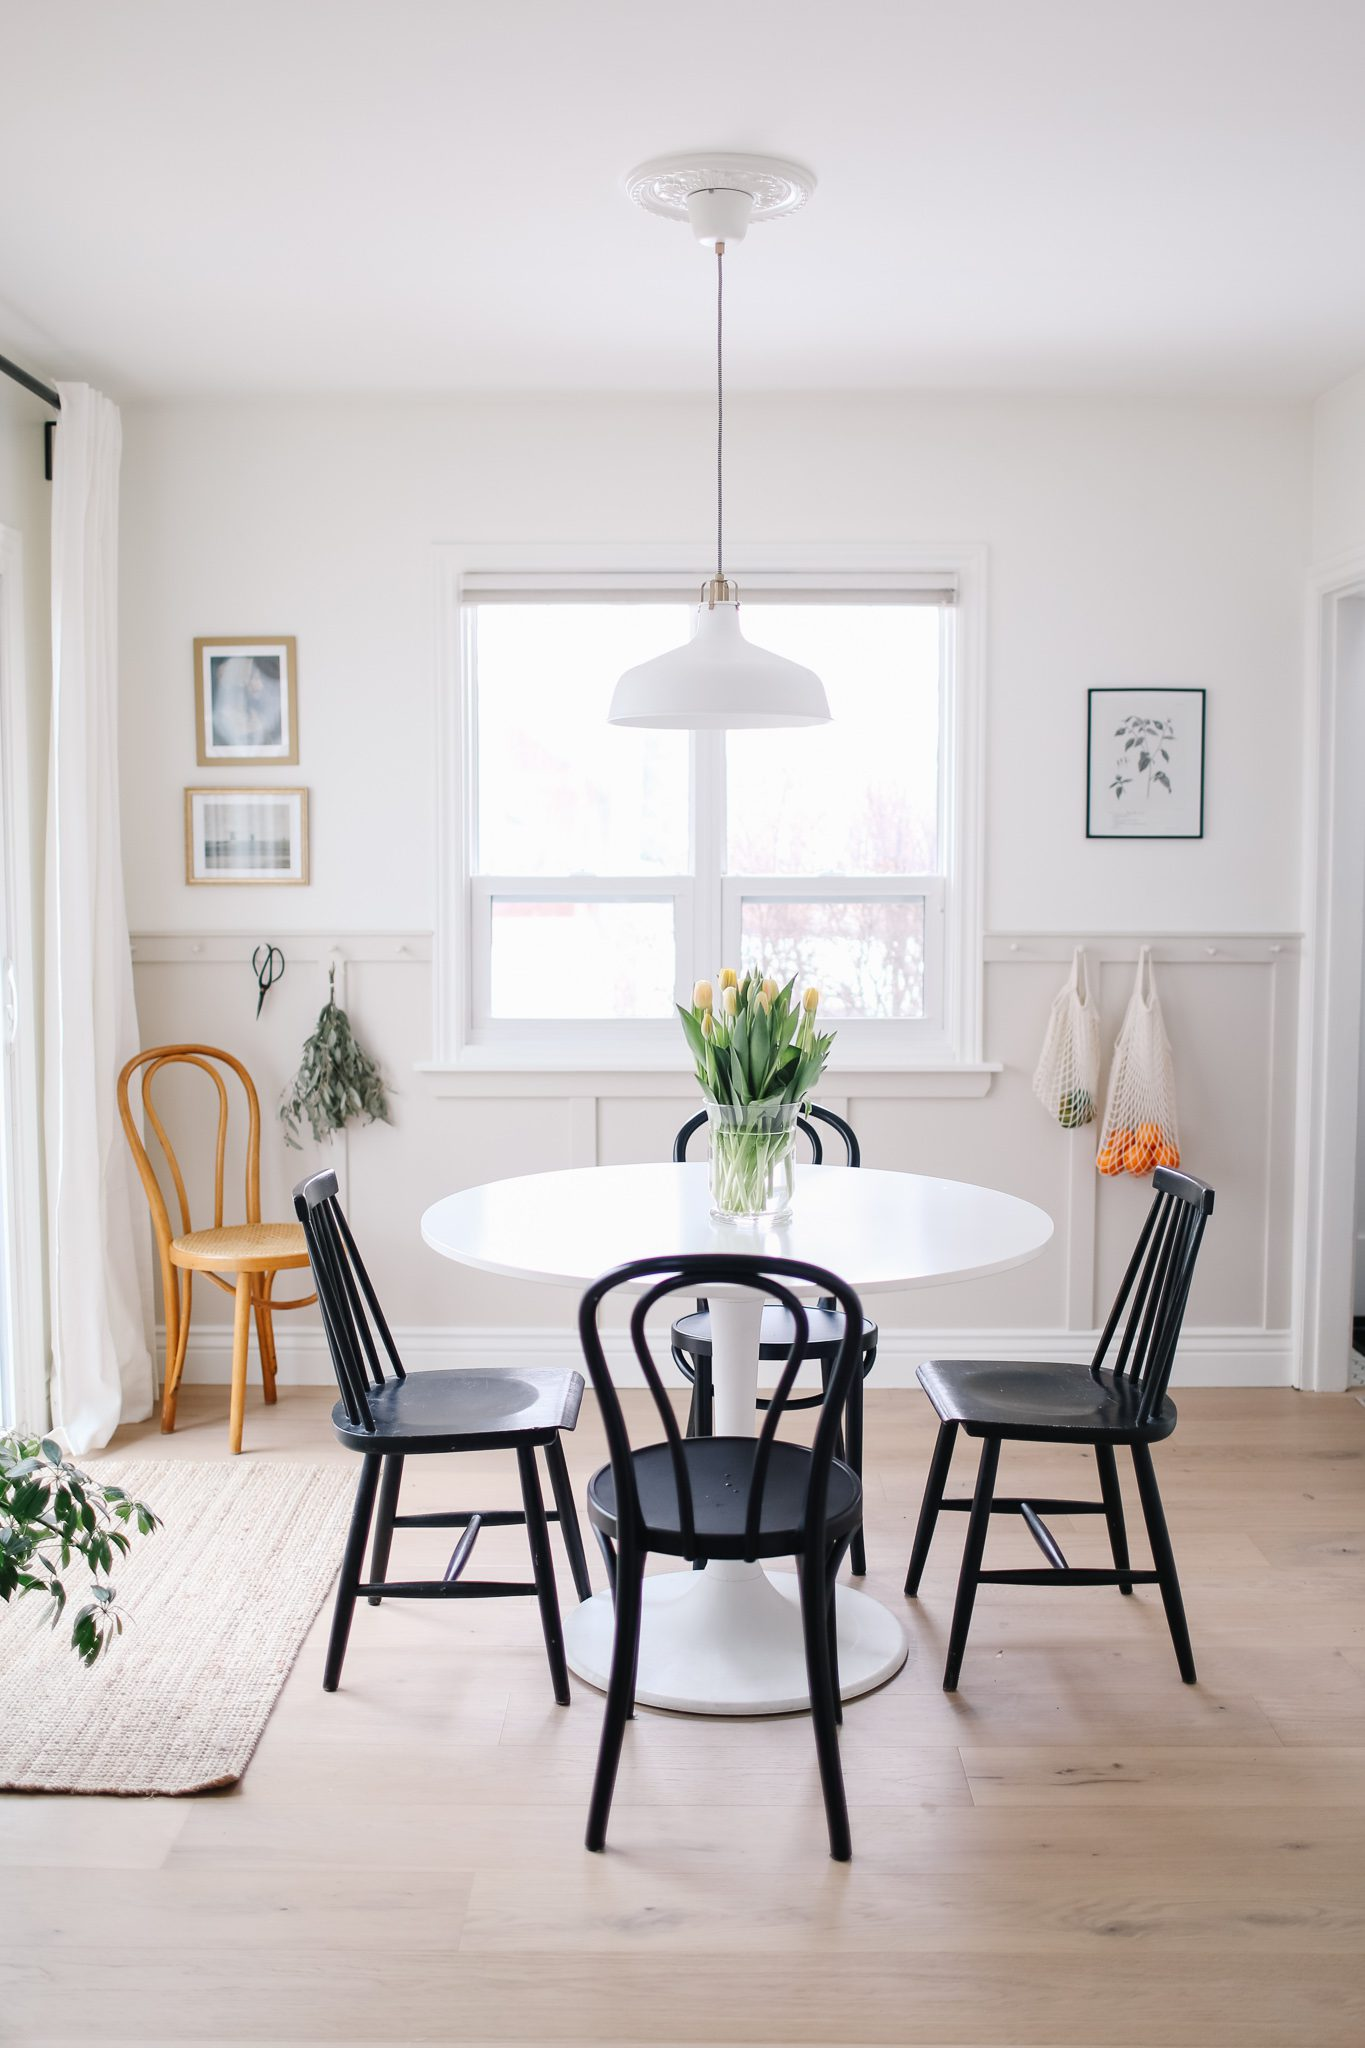 A white dining room table with black chairs